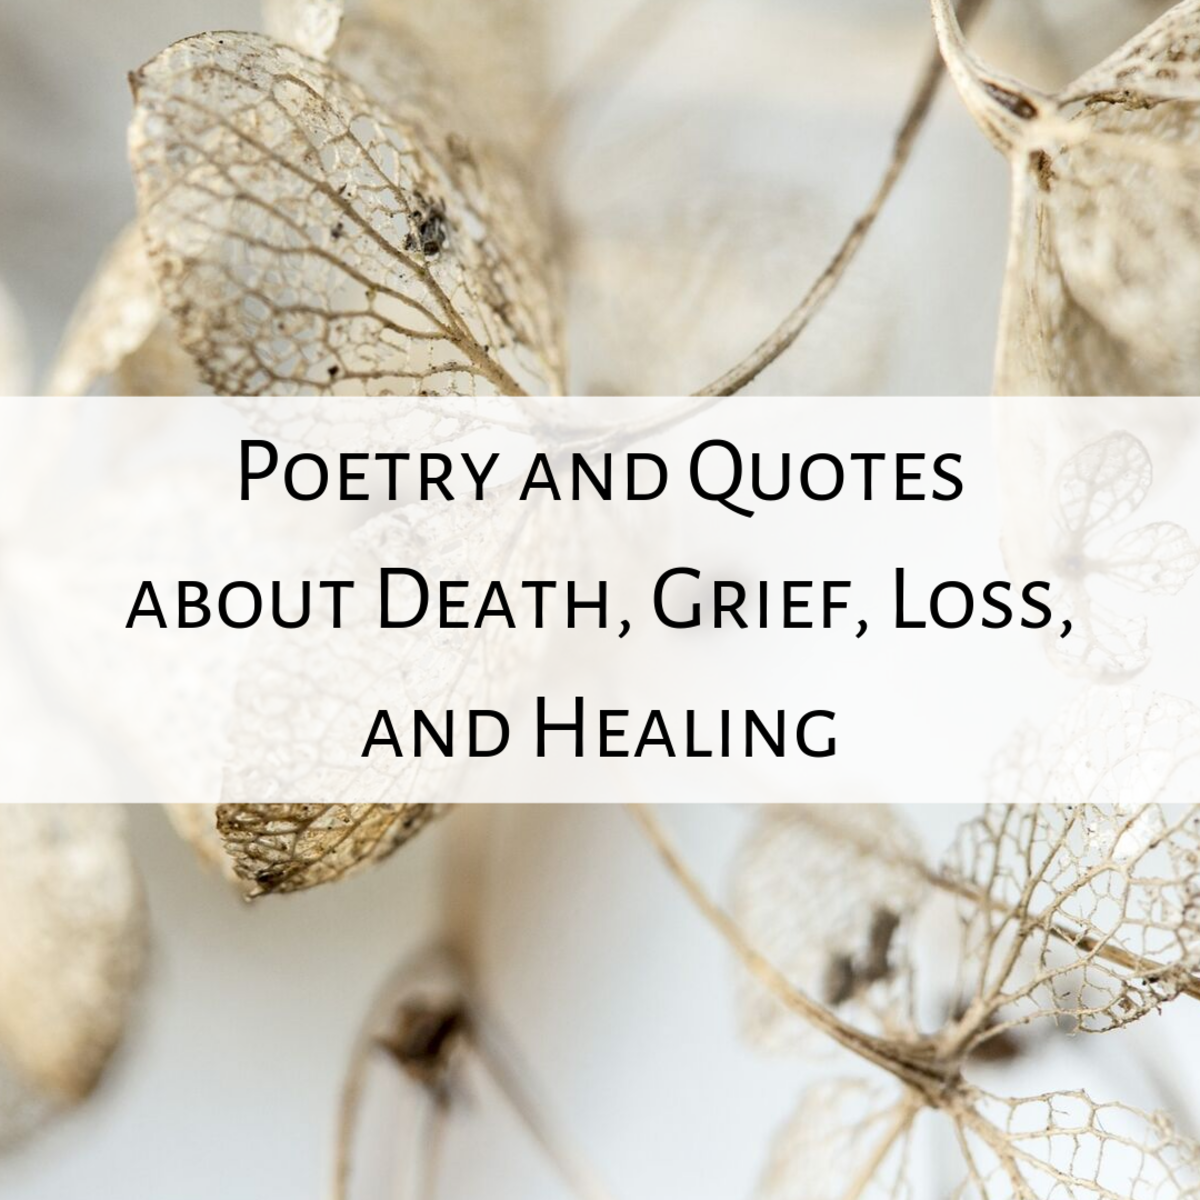 Quotes and Poems About Death, Grieving, and Healing